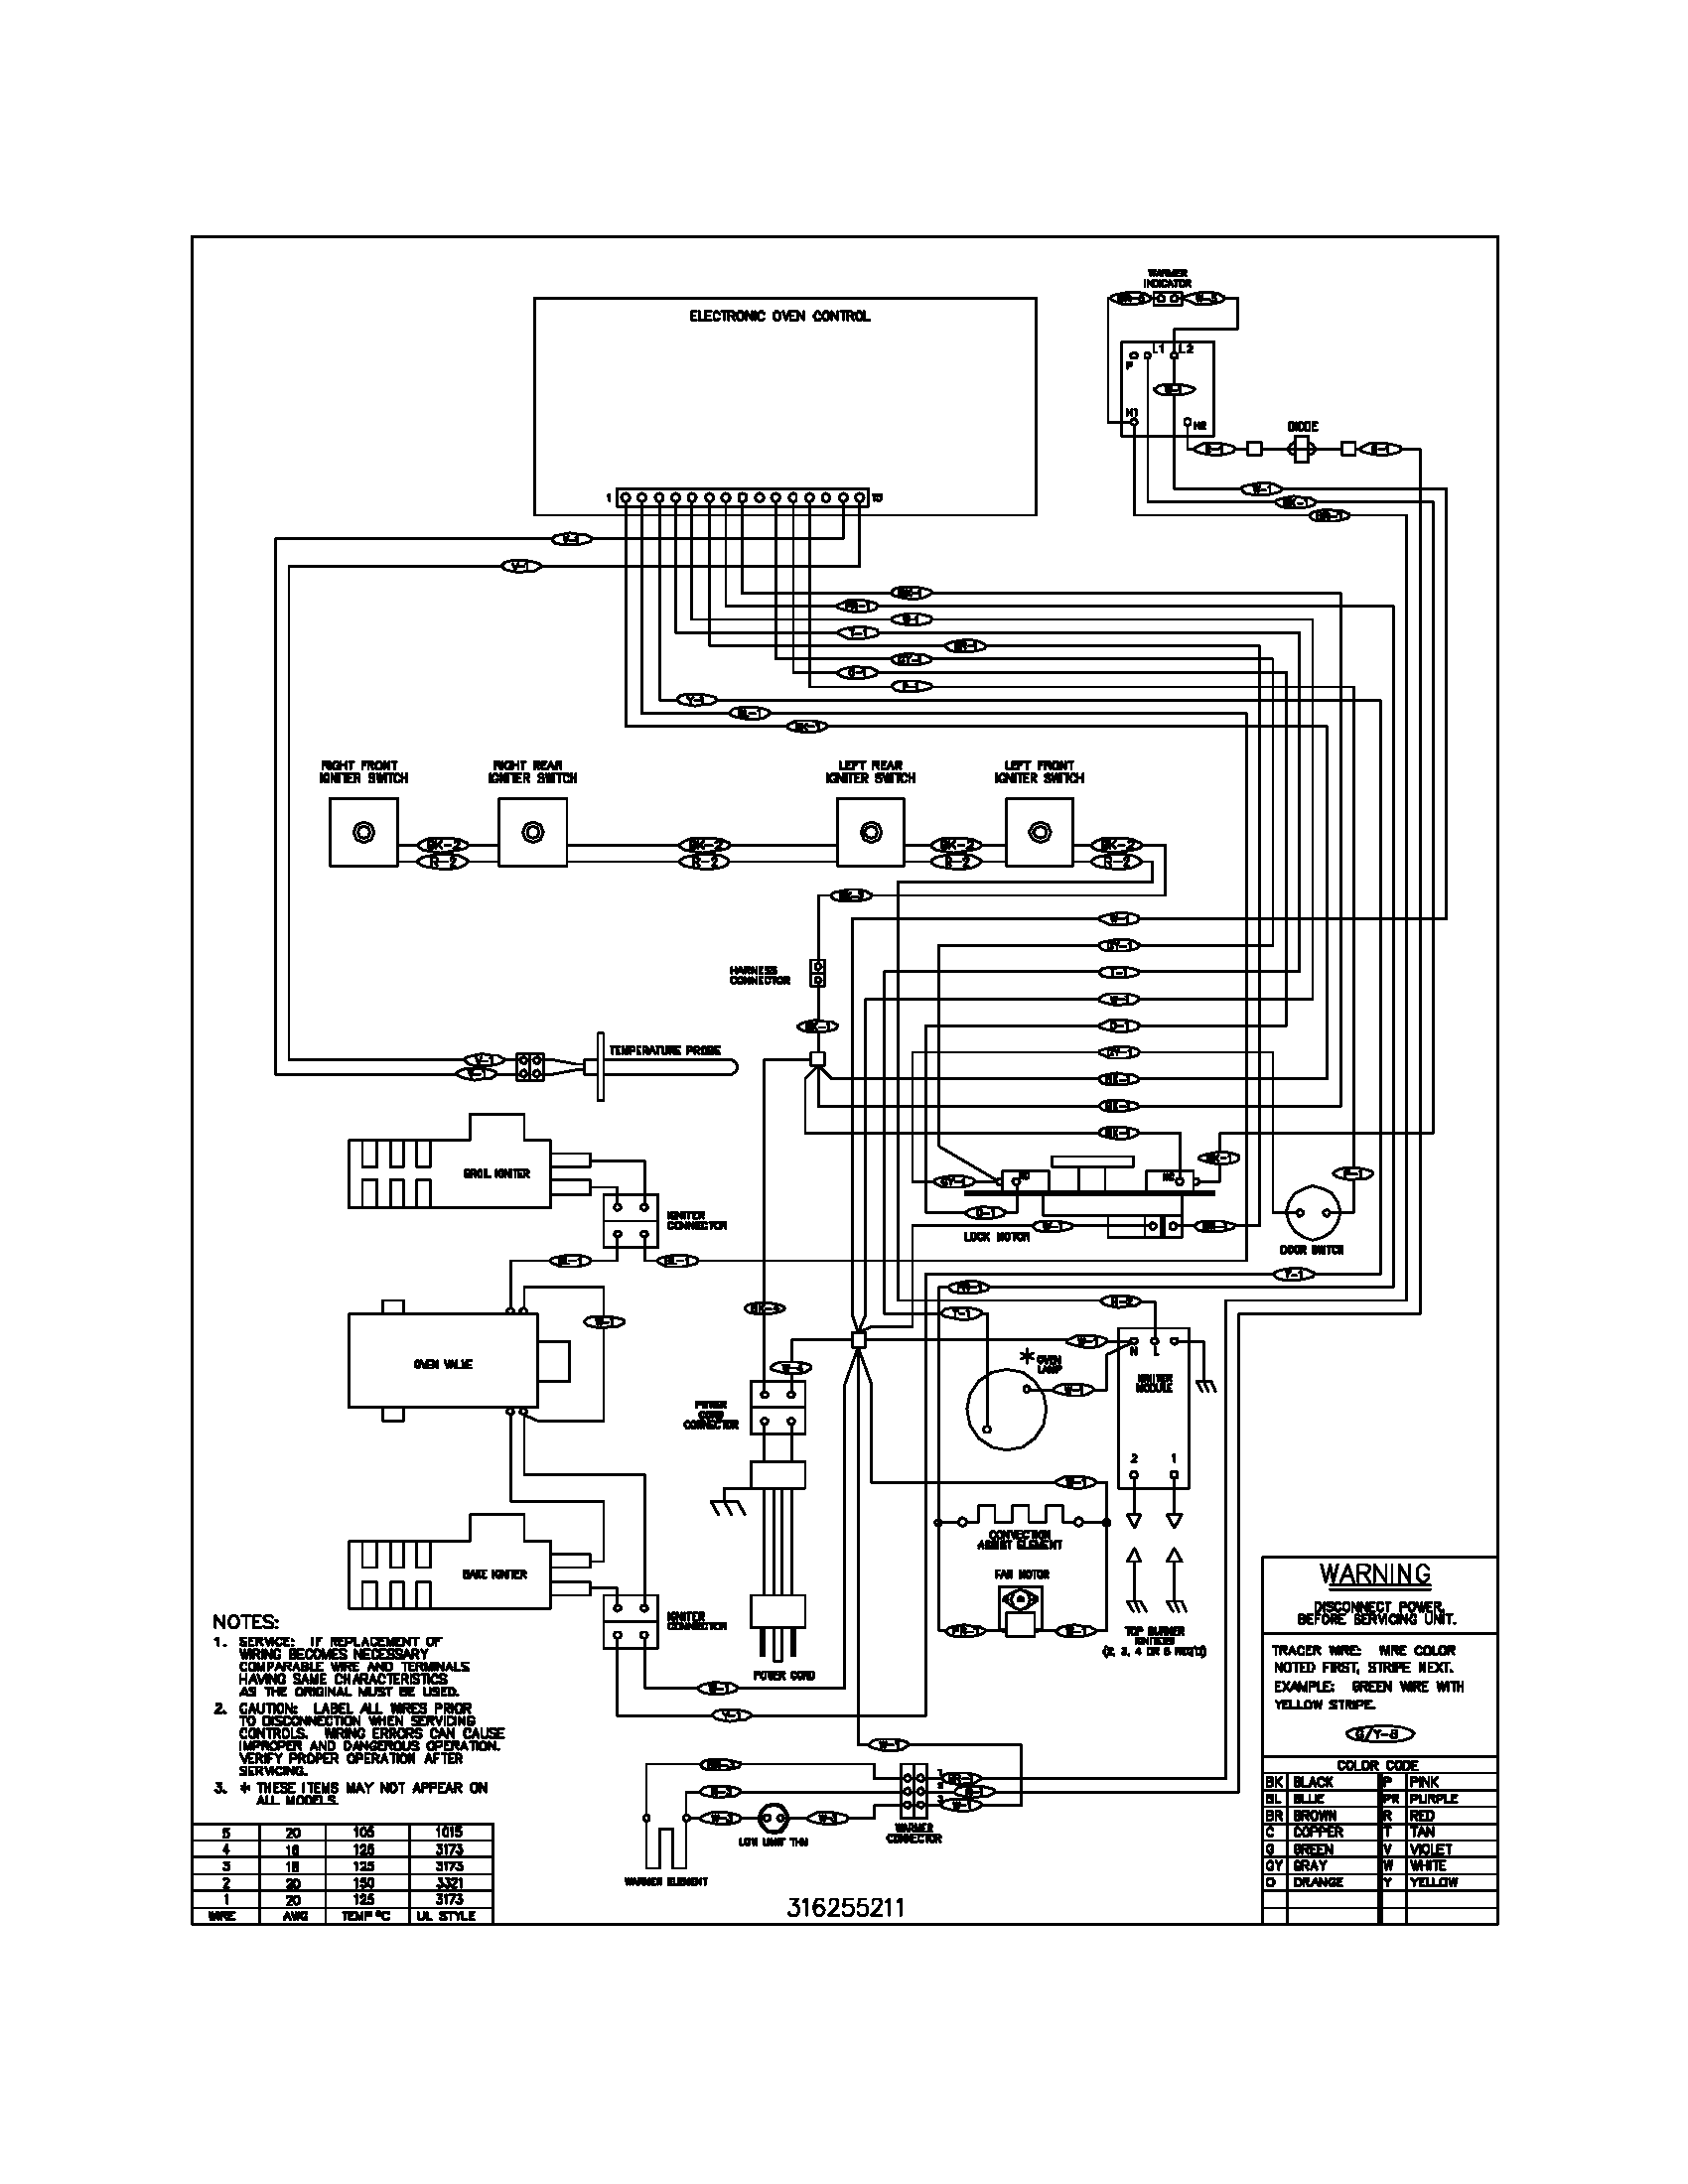 wiring diagram parts frigidaire plgf389ccc gas range timer stove clocks and appliance wiring diagram for frigidaire refrigerator at fashall.co